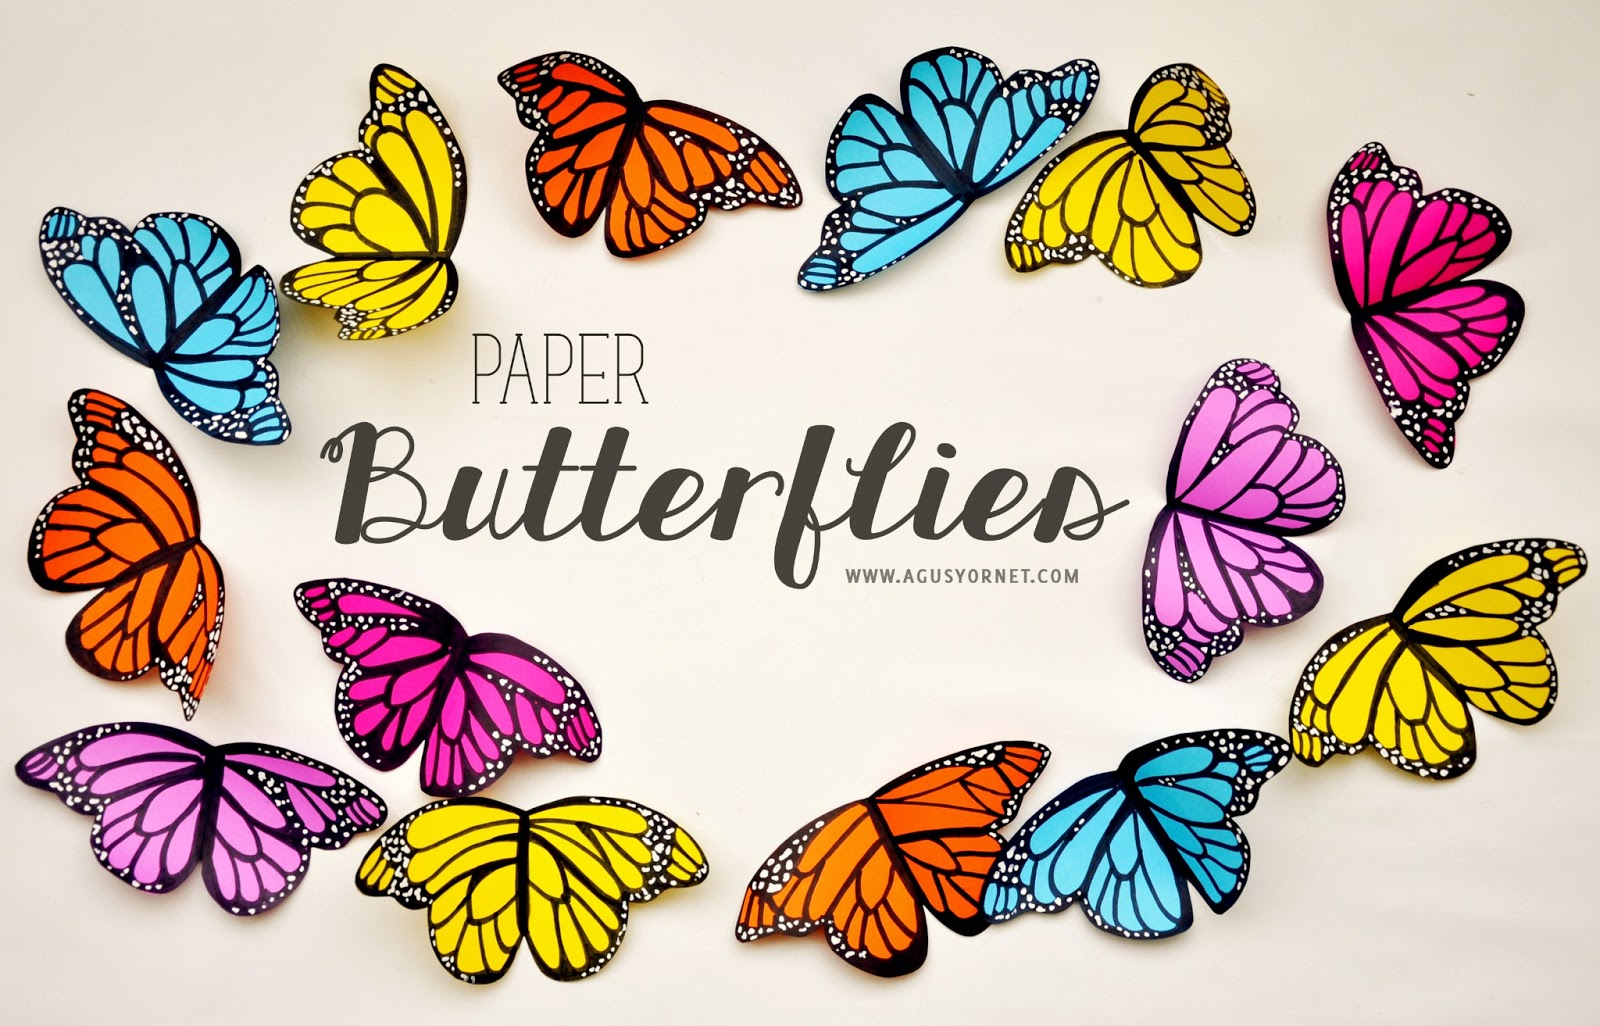 m butterfly essay m butterfly essay by mikeyplaya08 anti essays